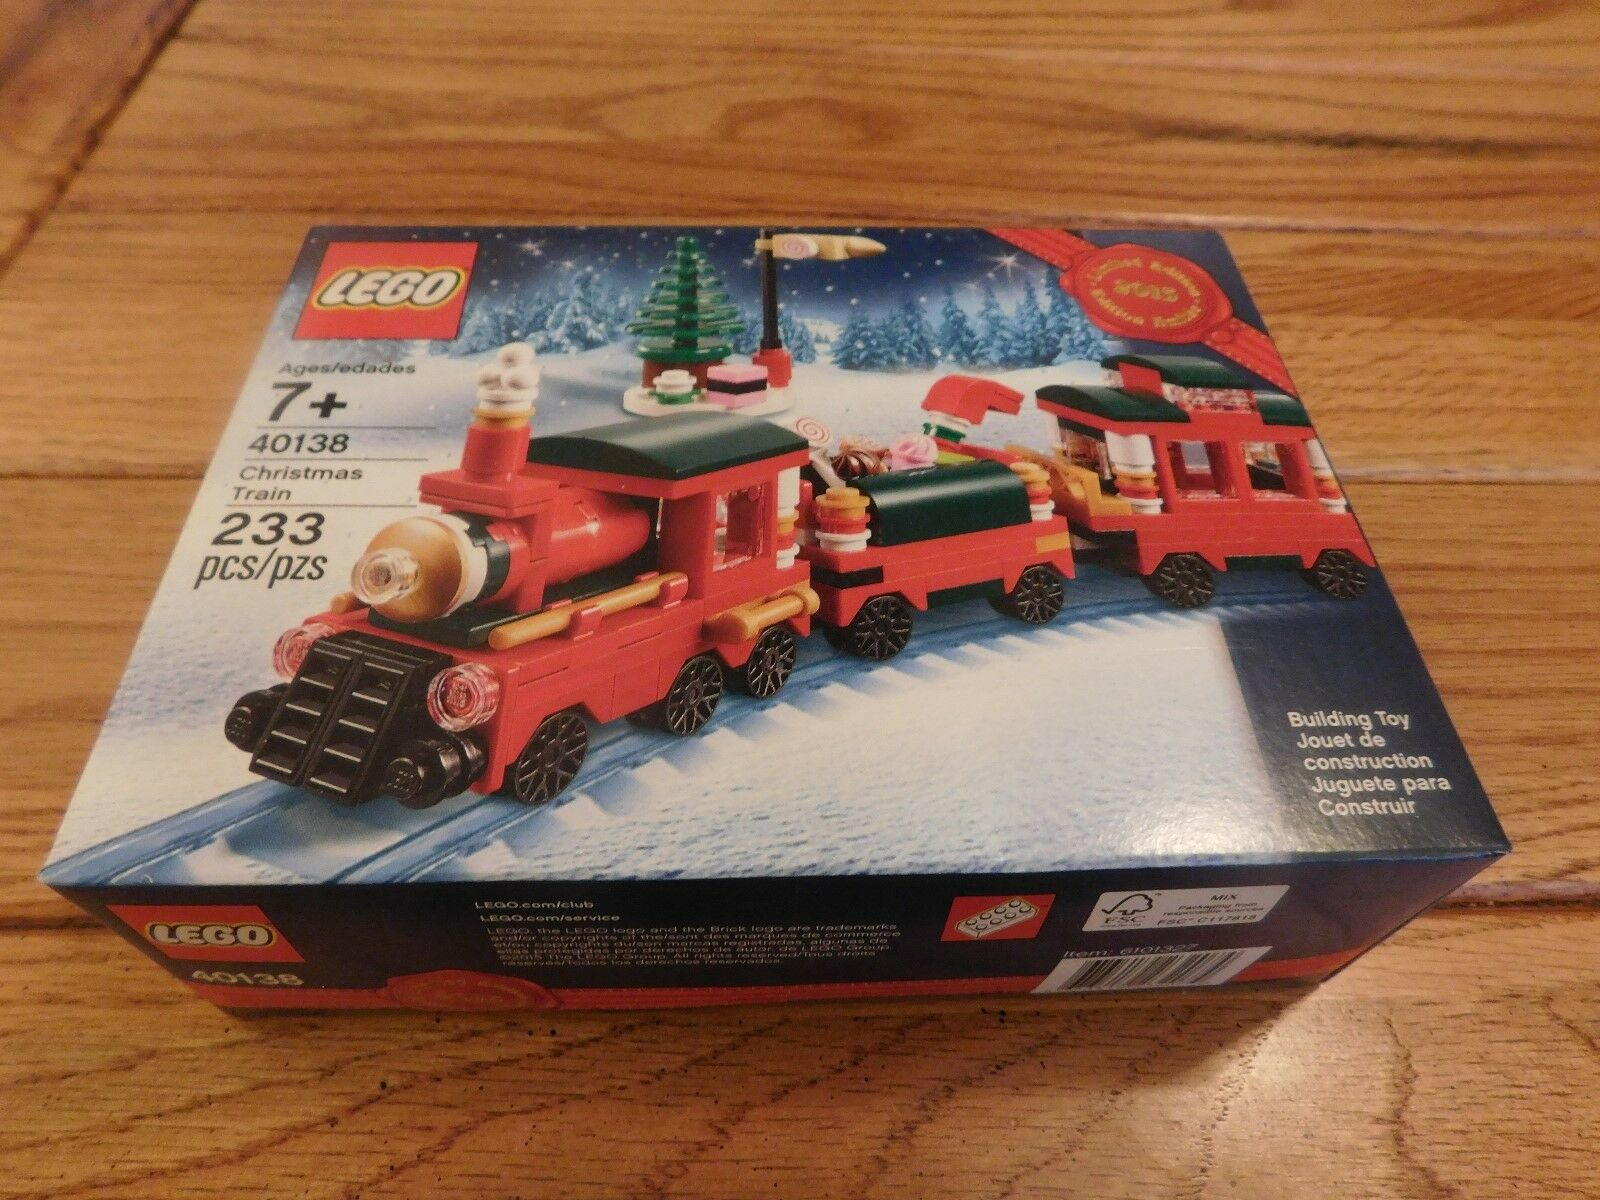 Lego 40138 Christmas Train Limited Edition 2015 Holiday Retirosso SEALED NEW RARE